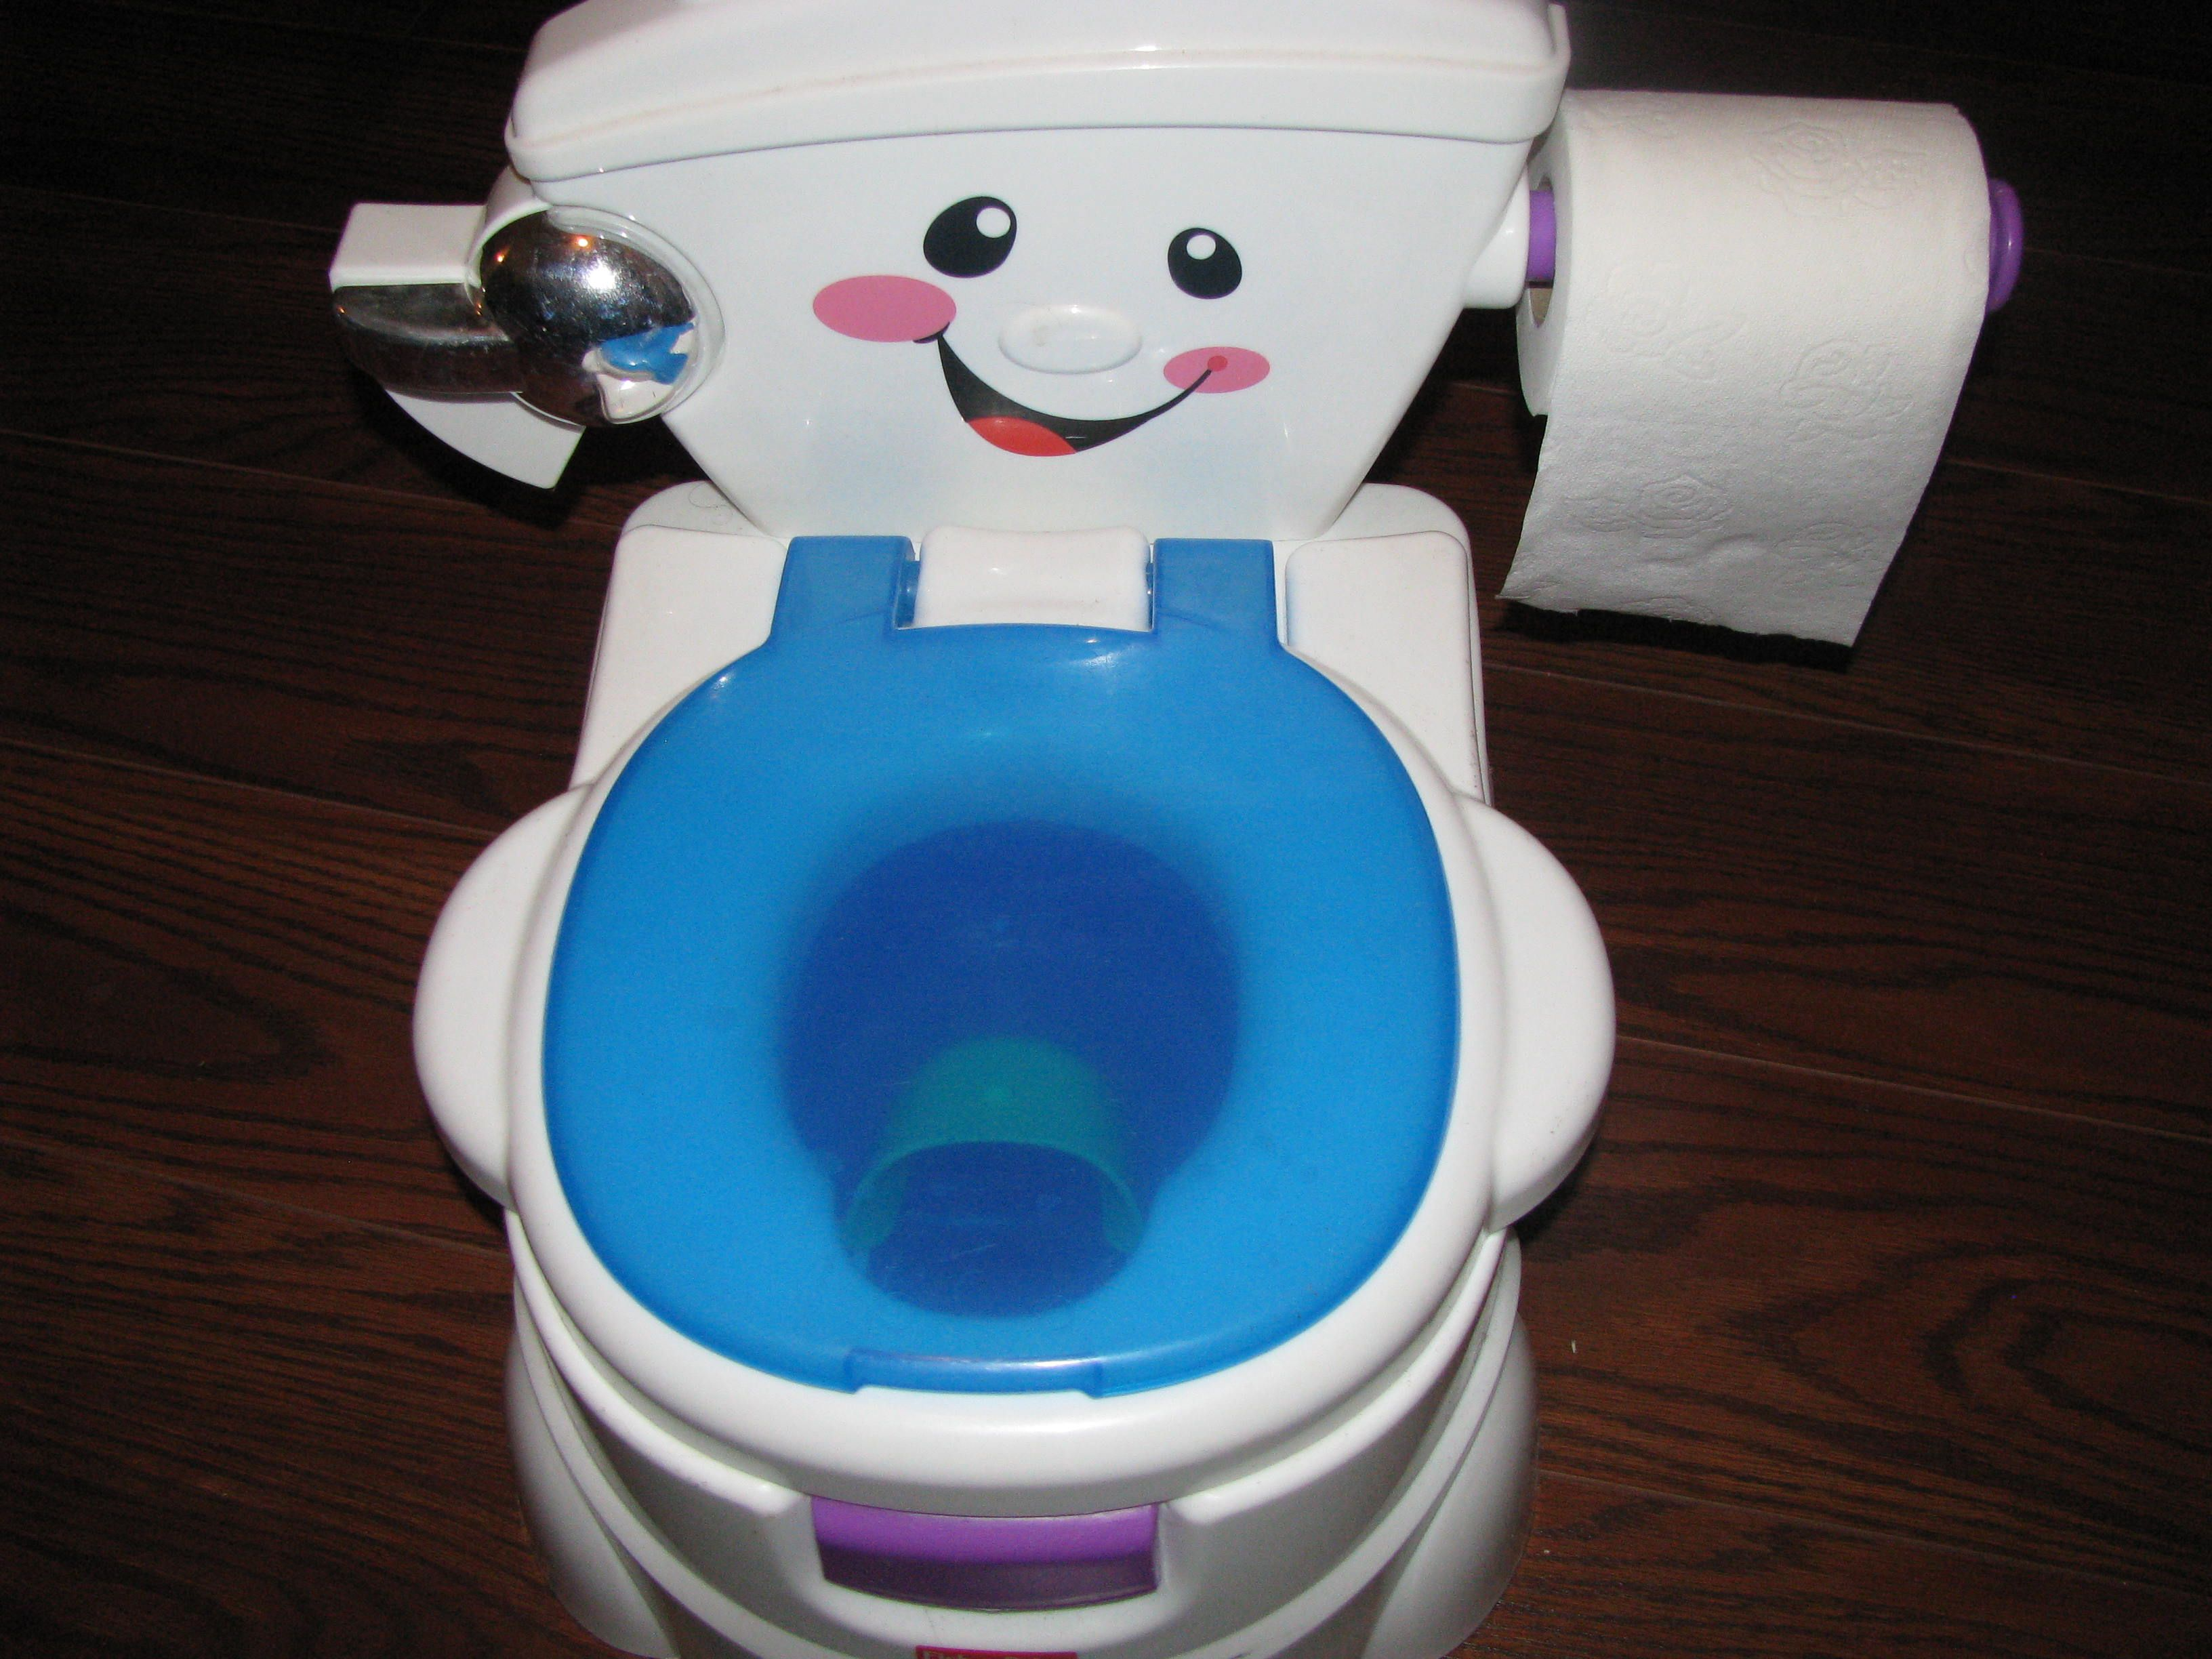 Potty Training Toilet : My review of the fisher price cheer for me potty seat for